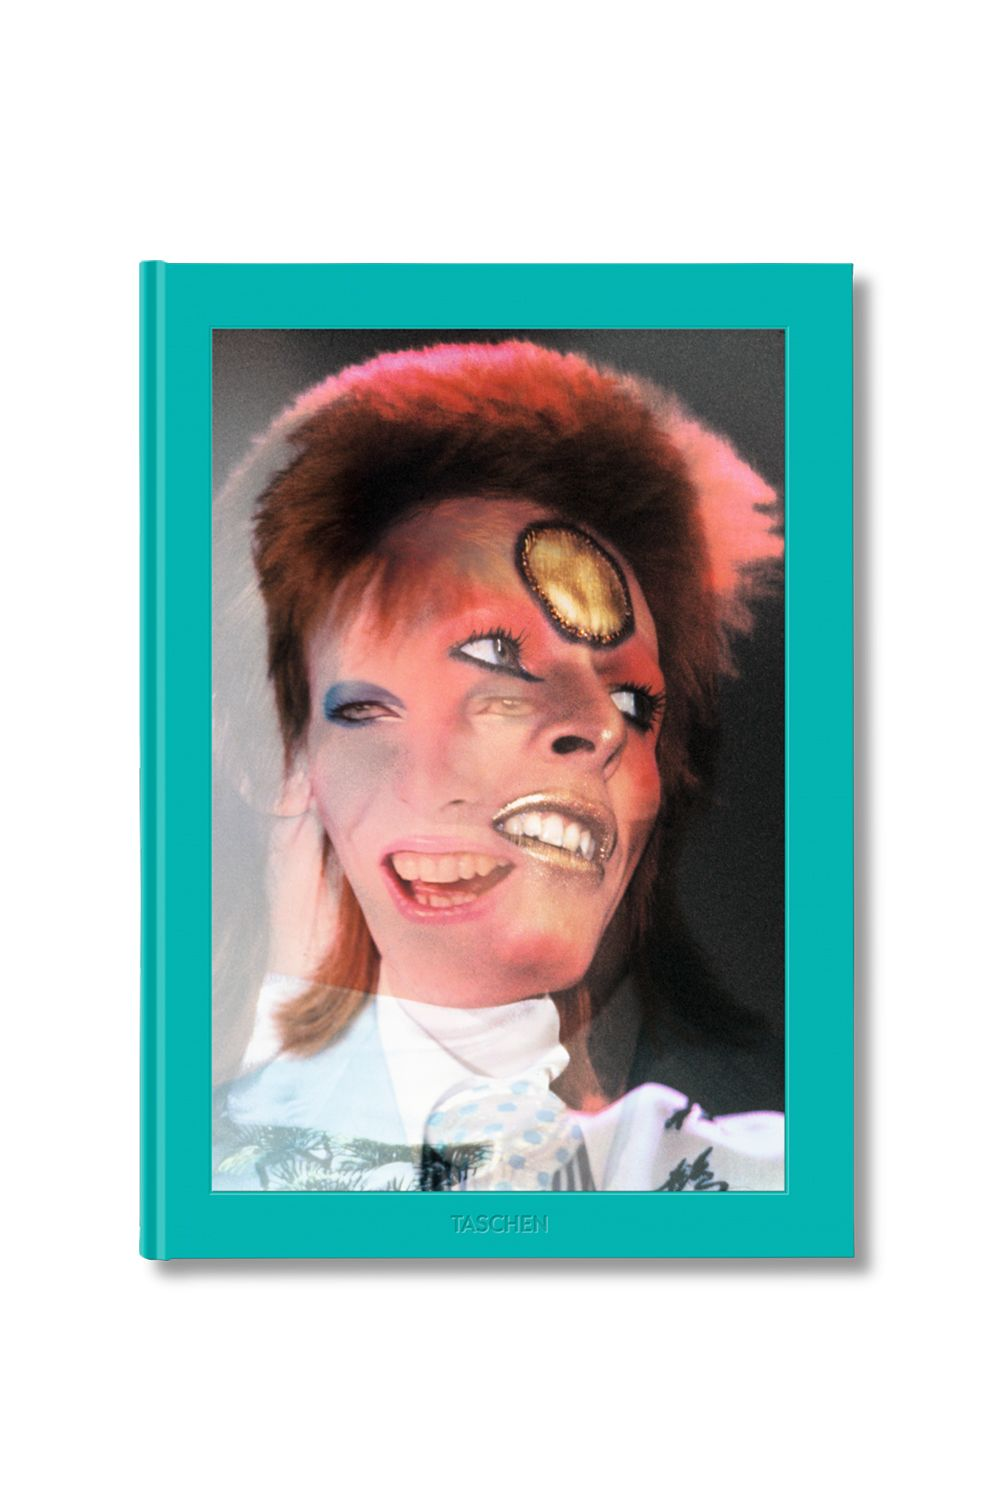 "<p><span class=""redactor-invisible-space"" data-verified=""redactor"" data-redactor-tag=""span"" data-redactor-class=""redactor-invisible-space"">The Thin White Duke was gone far too soon, and one of the best ways to pay tribute is this giant David Bowie book—<span class=""redactor-invisible-space"" data-verified=""redactor"" data-redactor-tag=""span"" data-redactor-class=""redactor-invisible-space""></span>released this year from Taschen—<span class=""redactor-invisible-space"" data-verified=""redactor"" data-redactor-tag=""span"" data-redactor-class=""redactor-invisible-space""></span>that features large-scale photographs of him by photographer Mick Rock&nbsp&#x3B;at his most colorful moments&nbsp&#x3B;on-stage and in his dressing room during the&nbsp&#x3B;Ziggy Stardust era.&nbsp&#x3B;</span></p><p><strong data-redactor-tag=""strong"" data-verified=""redactor""><em data-redactor-tag=""em"" data-verified=""redactor"">Mick Rock: The Rise of David Bowie, 1972-1973</em>, $48&#x3B; <a href=""http://www.barnesandnoble.com/w/mick-rock-mick-rock/1123289737?ean=9783836560948&amp&#x3B;st=PLA&amp&#x3B;sid=BNB_DRS_Core+Shopping+Books_00000000&amp&#x3B;2sid=Google_&amp&#x3B;sourceId=PLGoP737&amp&#x3B;k_clickid=3x737"" target=""_blank"">barnesandnoble.com</a>.</strong></p>"